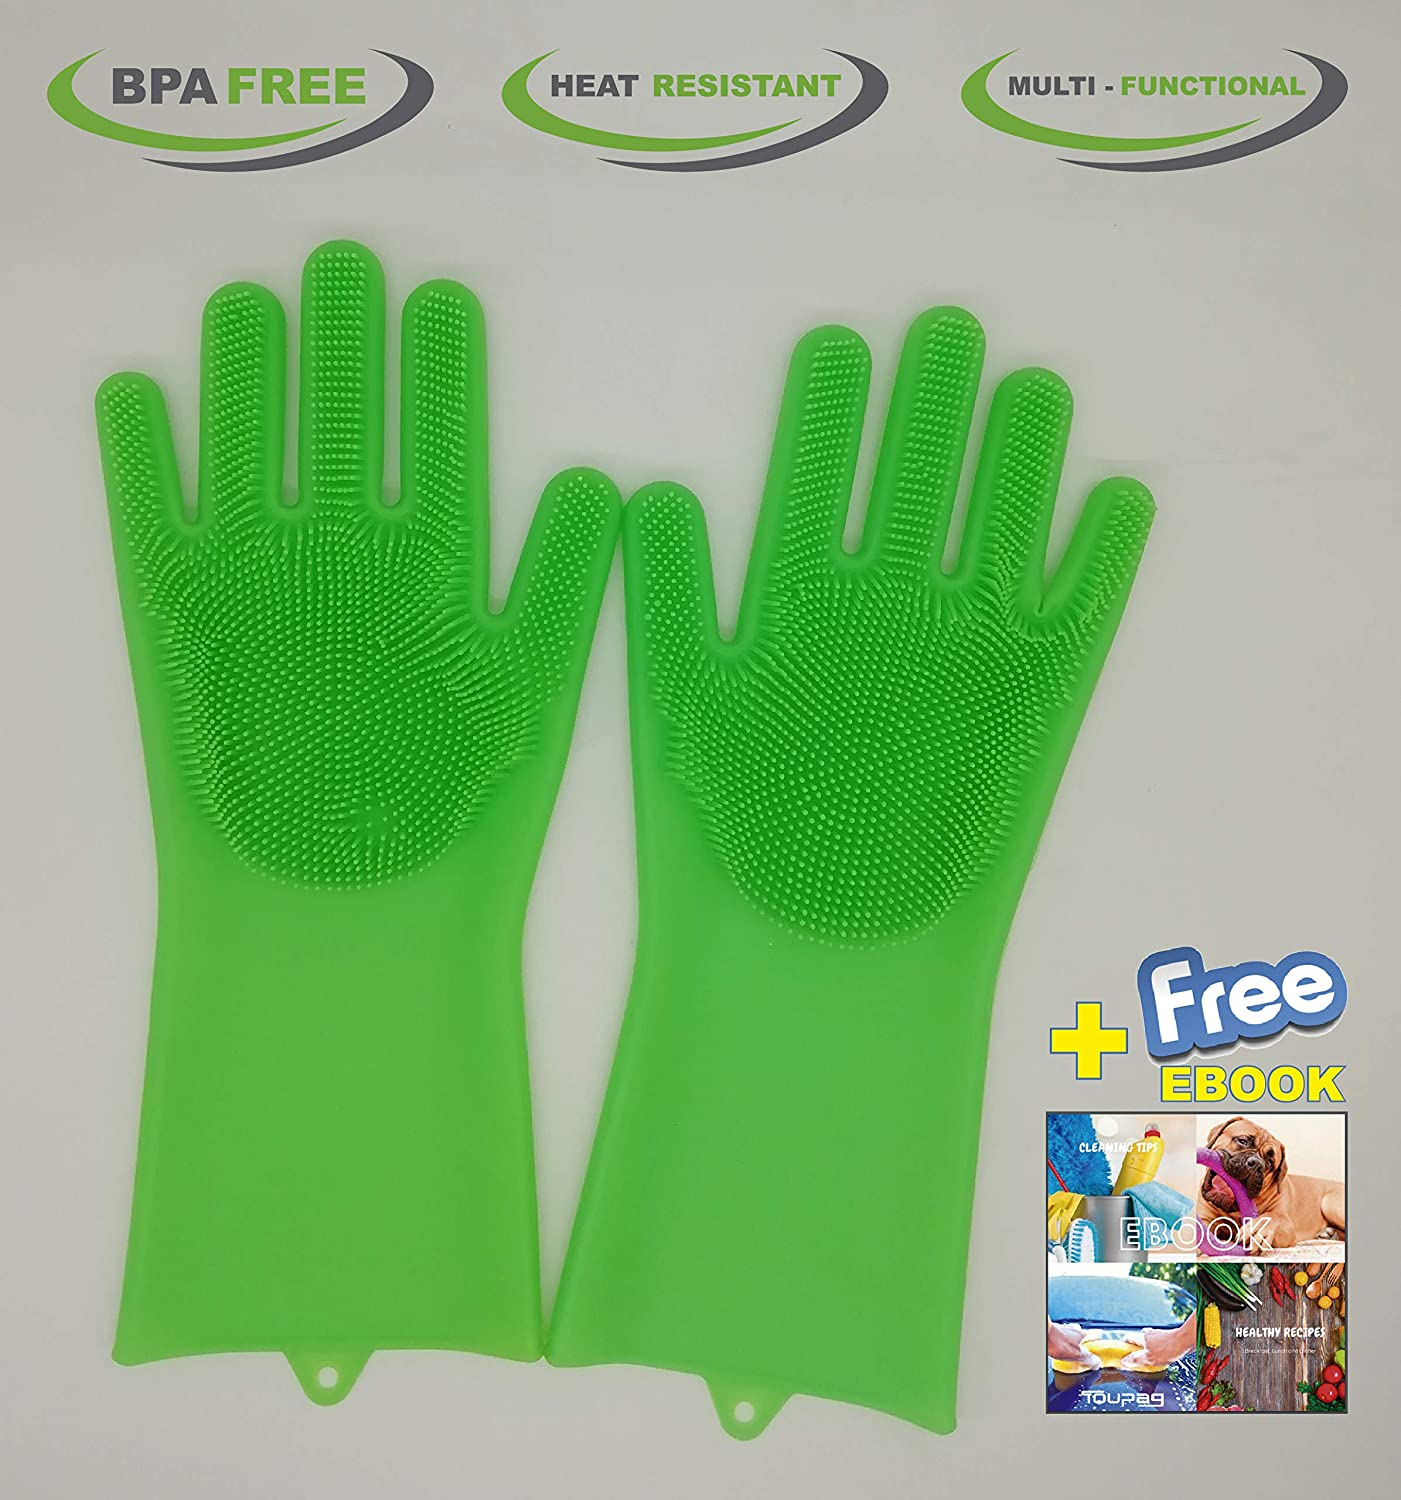 Magic Silicone Washing Gloves, Scrubber Dishwashing, Heat Resistant, Durable,1 Pair, Easy to Clean, Reusable, Multipurpose for Kitchen, Bathroom, Bed Room, Car Wash, Pet Hair Care (Green)